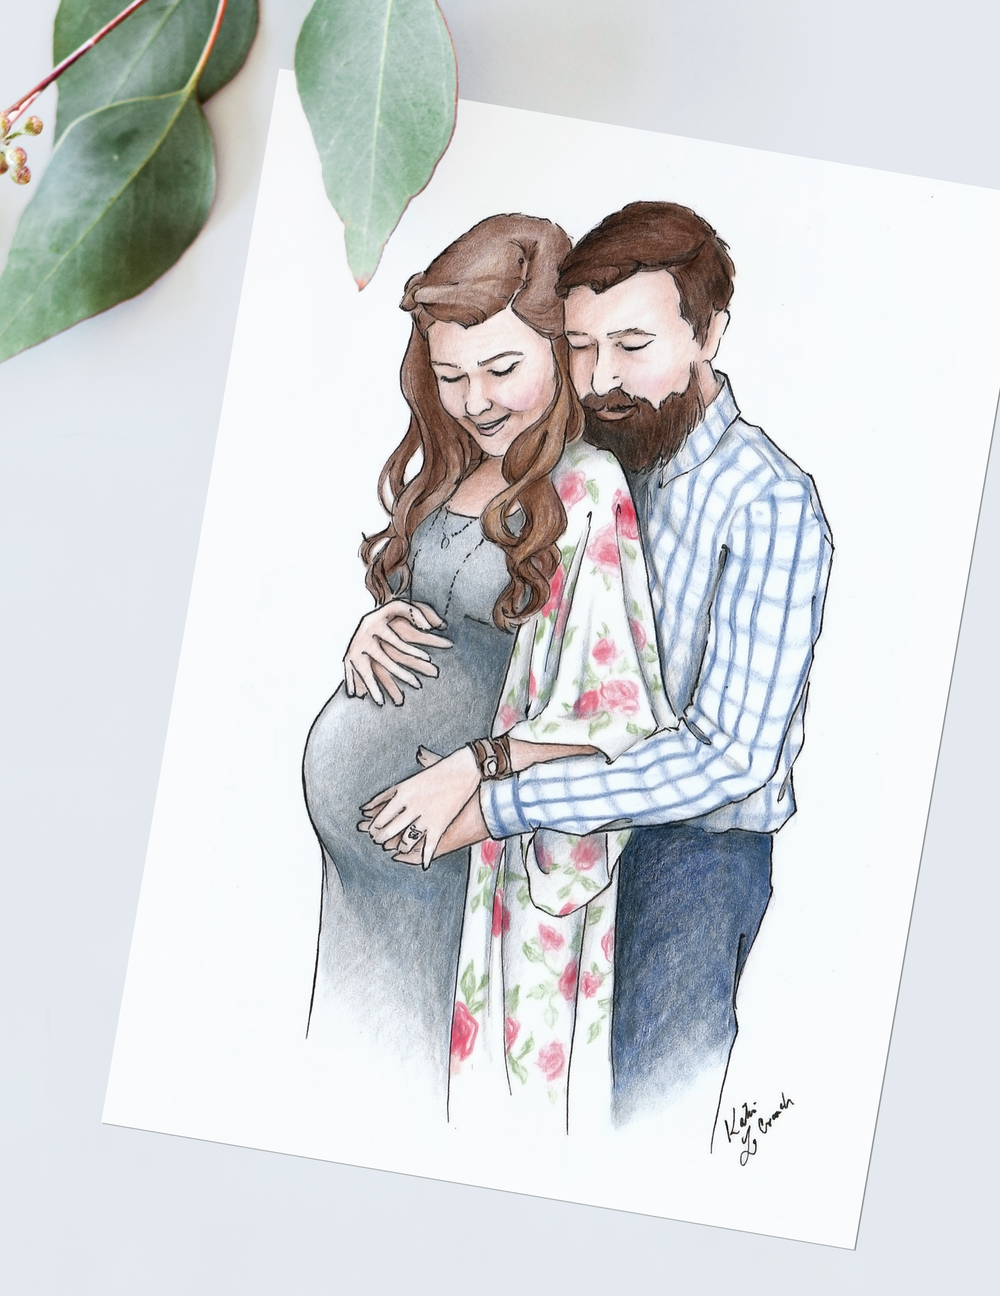 Custom watercolor family portrait. Unique maternity portrait in watercolor. #customportrait #portraitillustration #blusheddesign #watercolorportrait